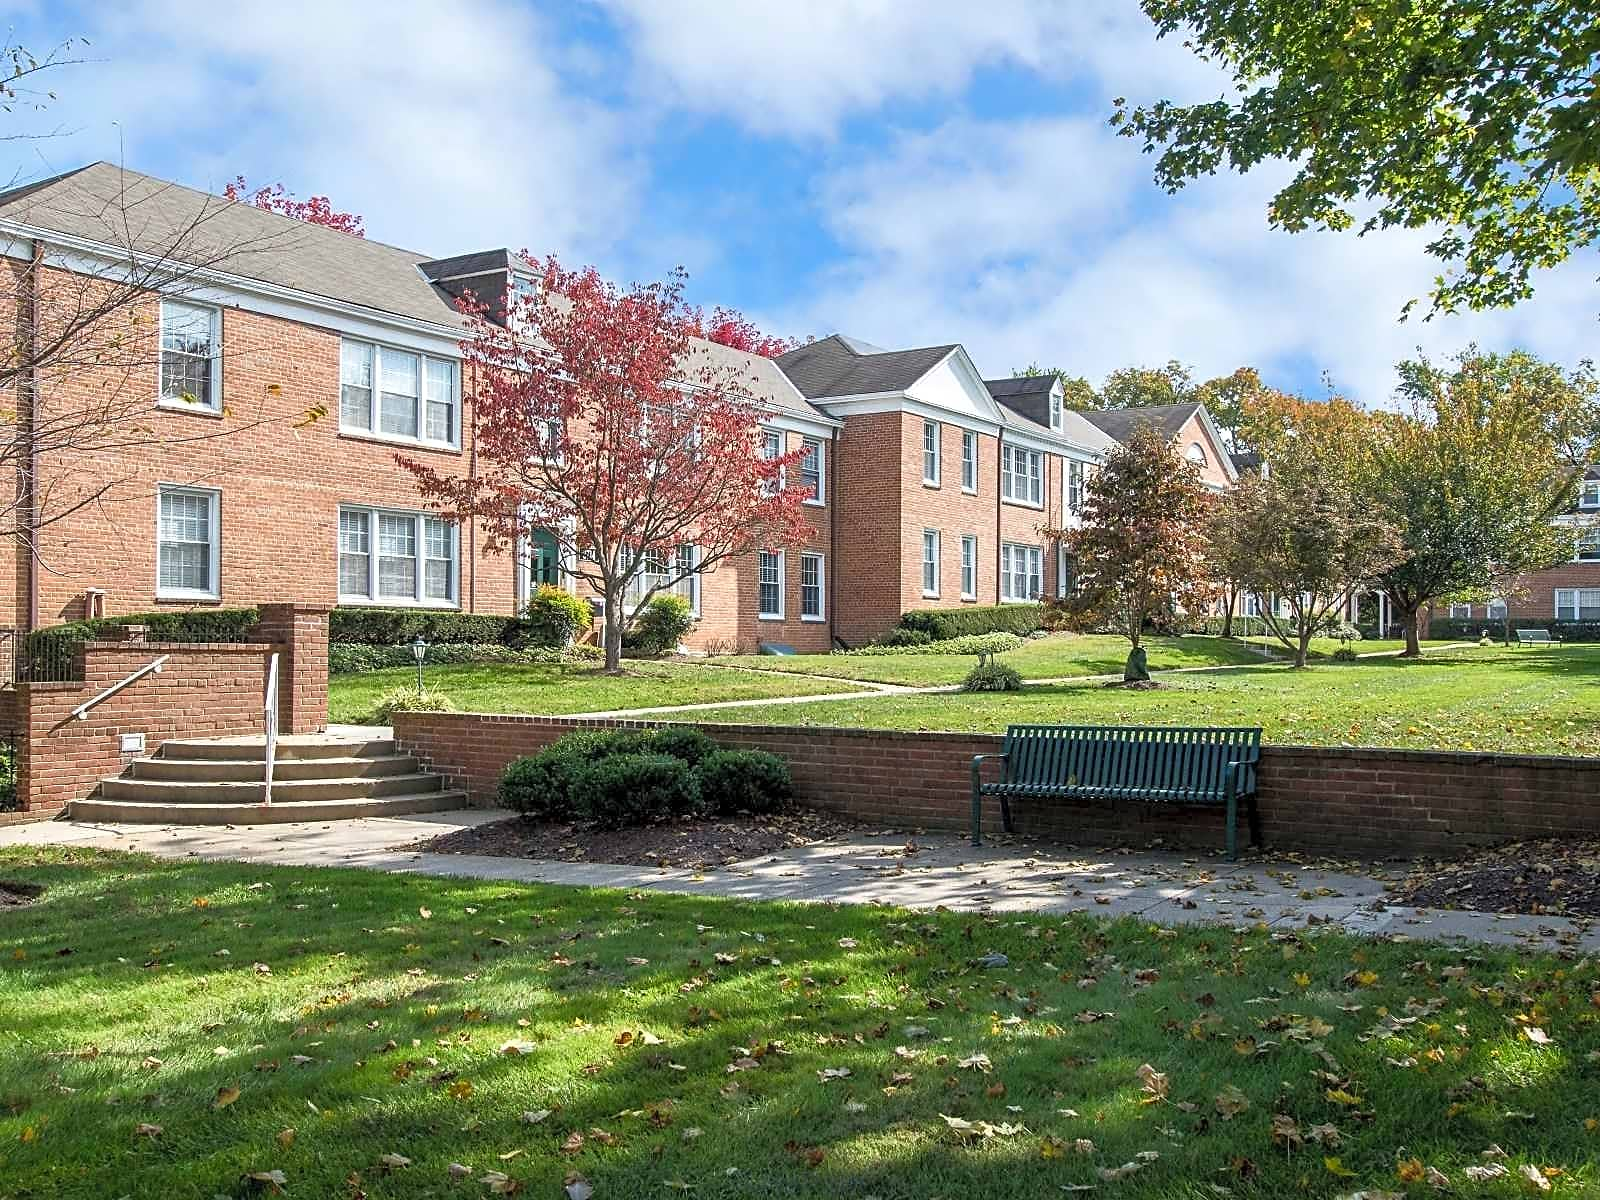 Lake apartments and townhomes chevy chase md 20815 for Academie de cuisine bethesda md